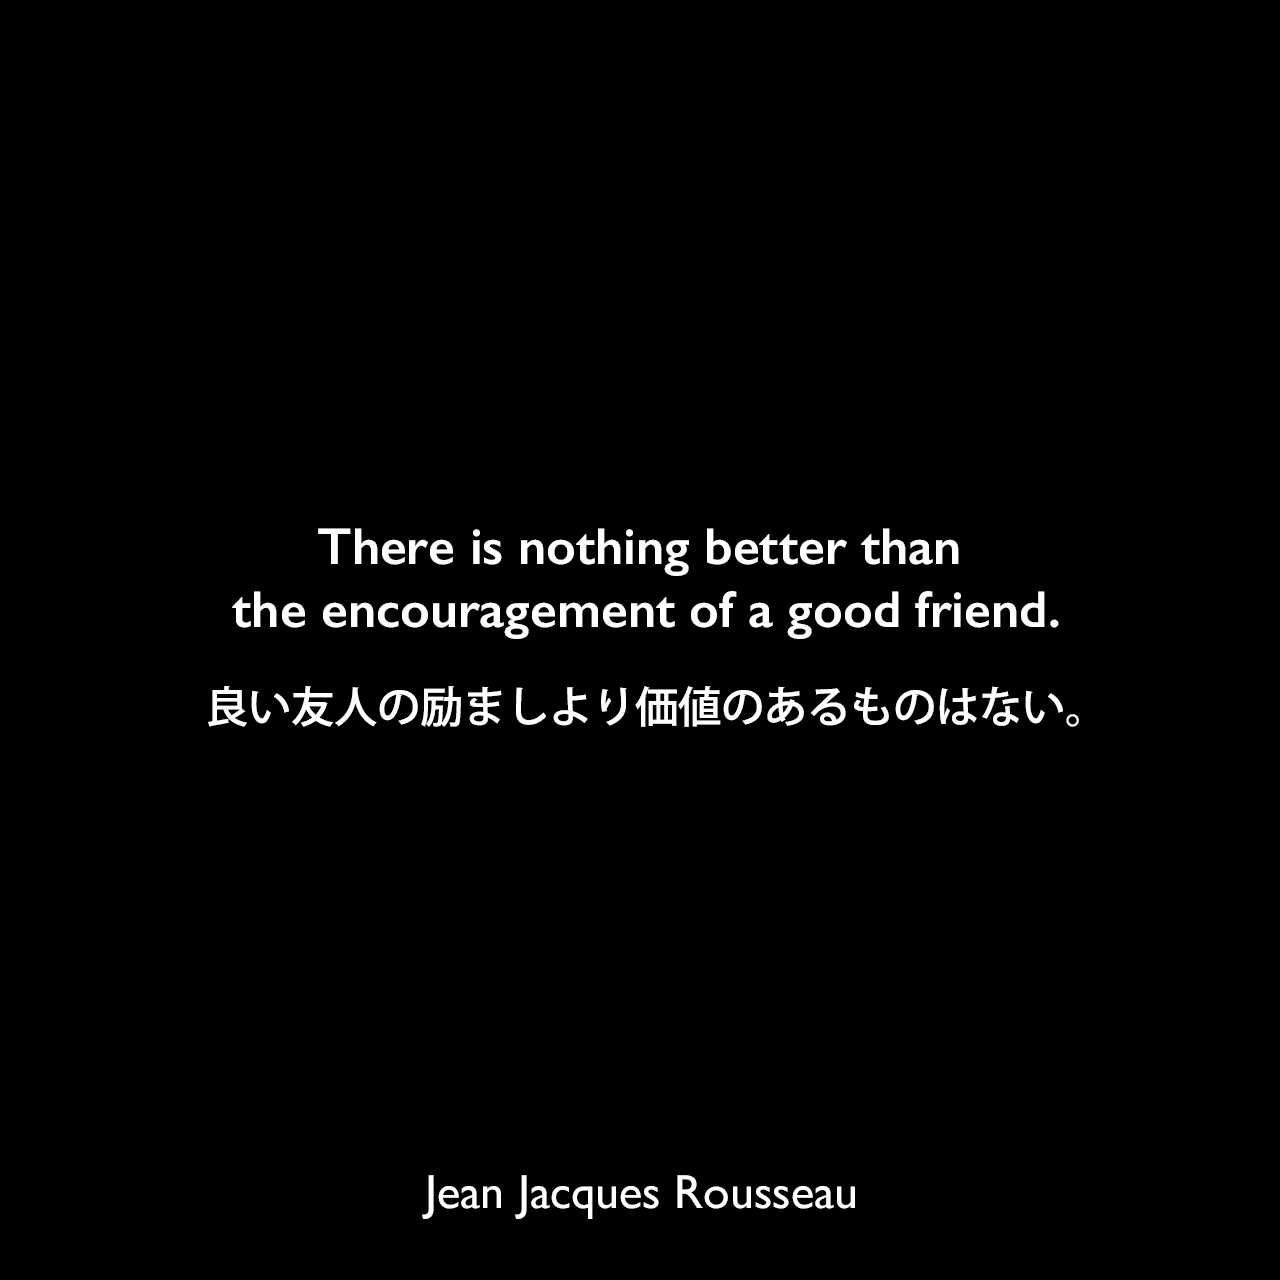 There is nothing better than the encouragement of a good friend.良い友人の励ましより価値のあるものはない。